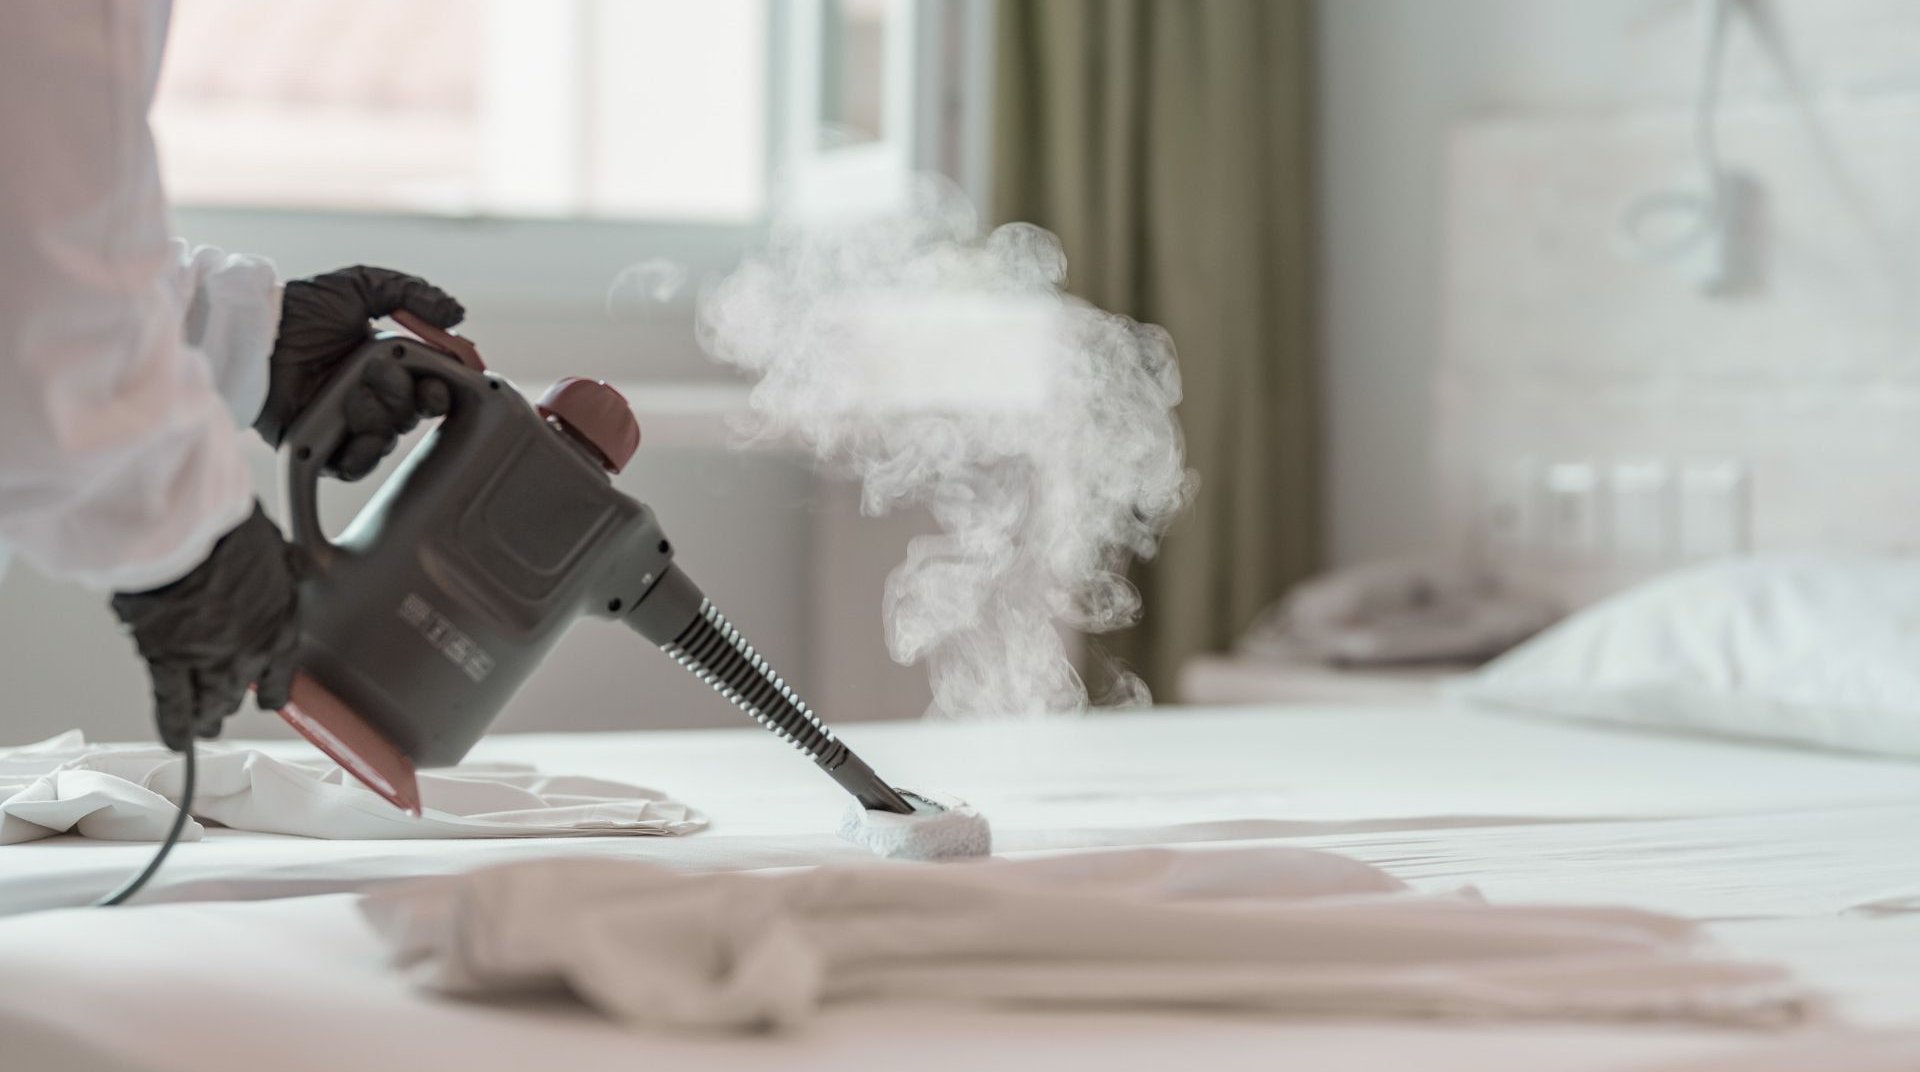 Employee steam cleaning the beds wearing mask and gloves